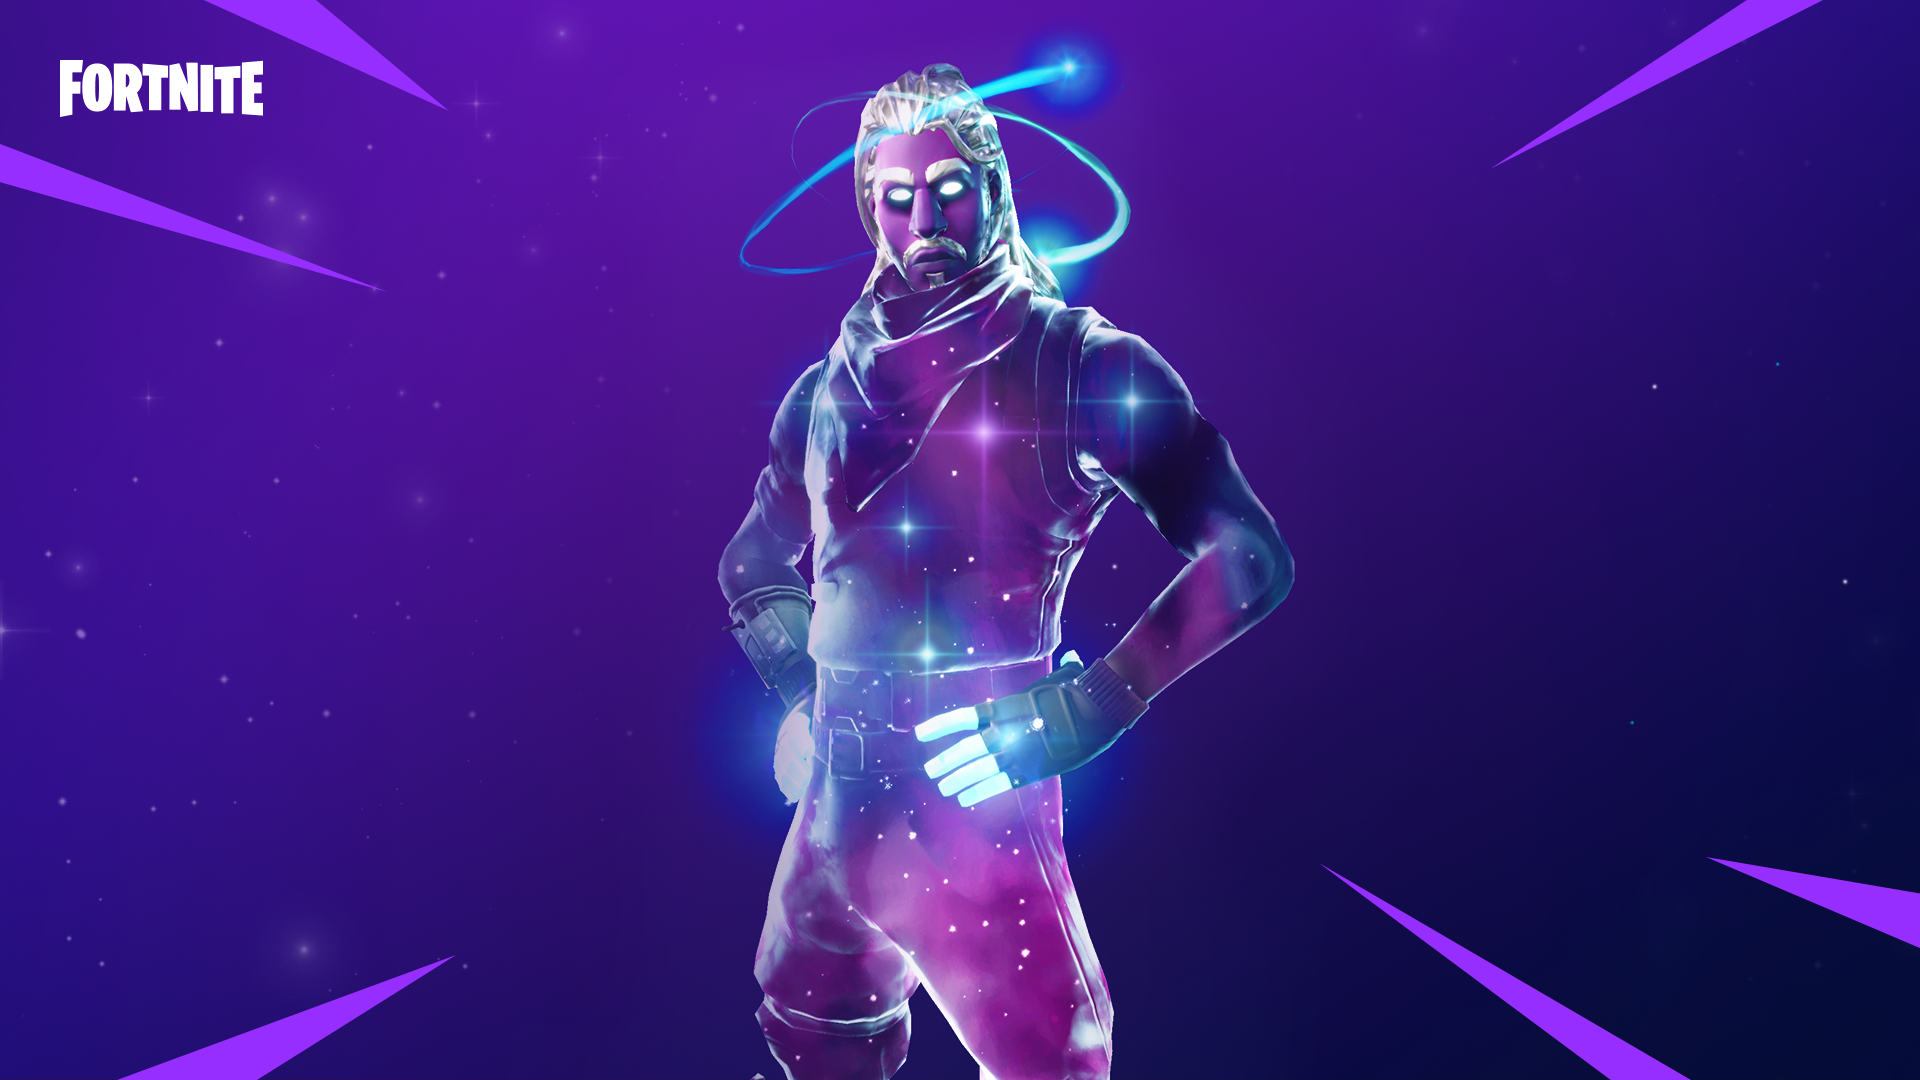 How to Get the Fortnite Galaxy Skin | Tom's Guide